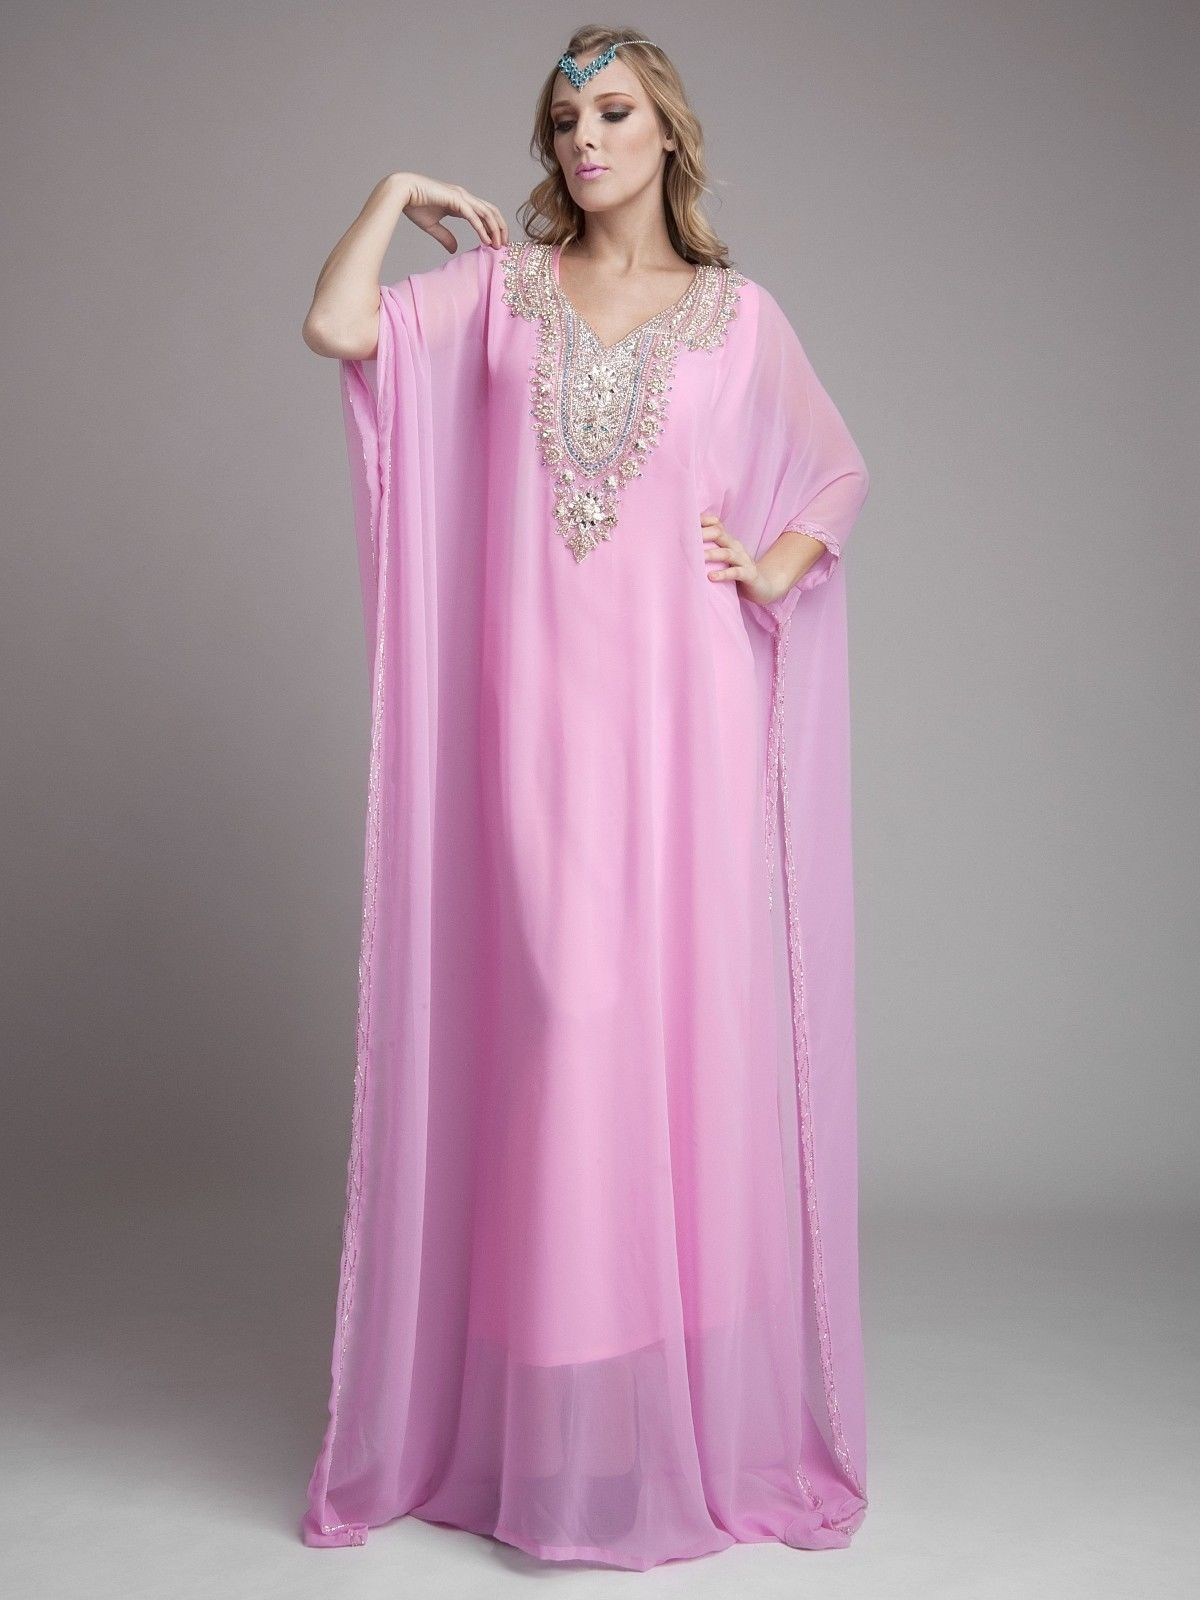 DUBAI VERY FANCY KAFTANS abaya jalabiya Ladies Maxi Dress Wedding ...